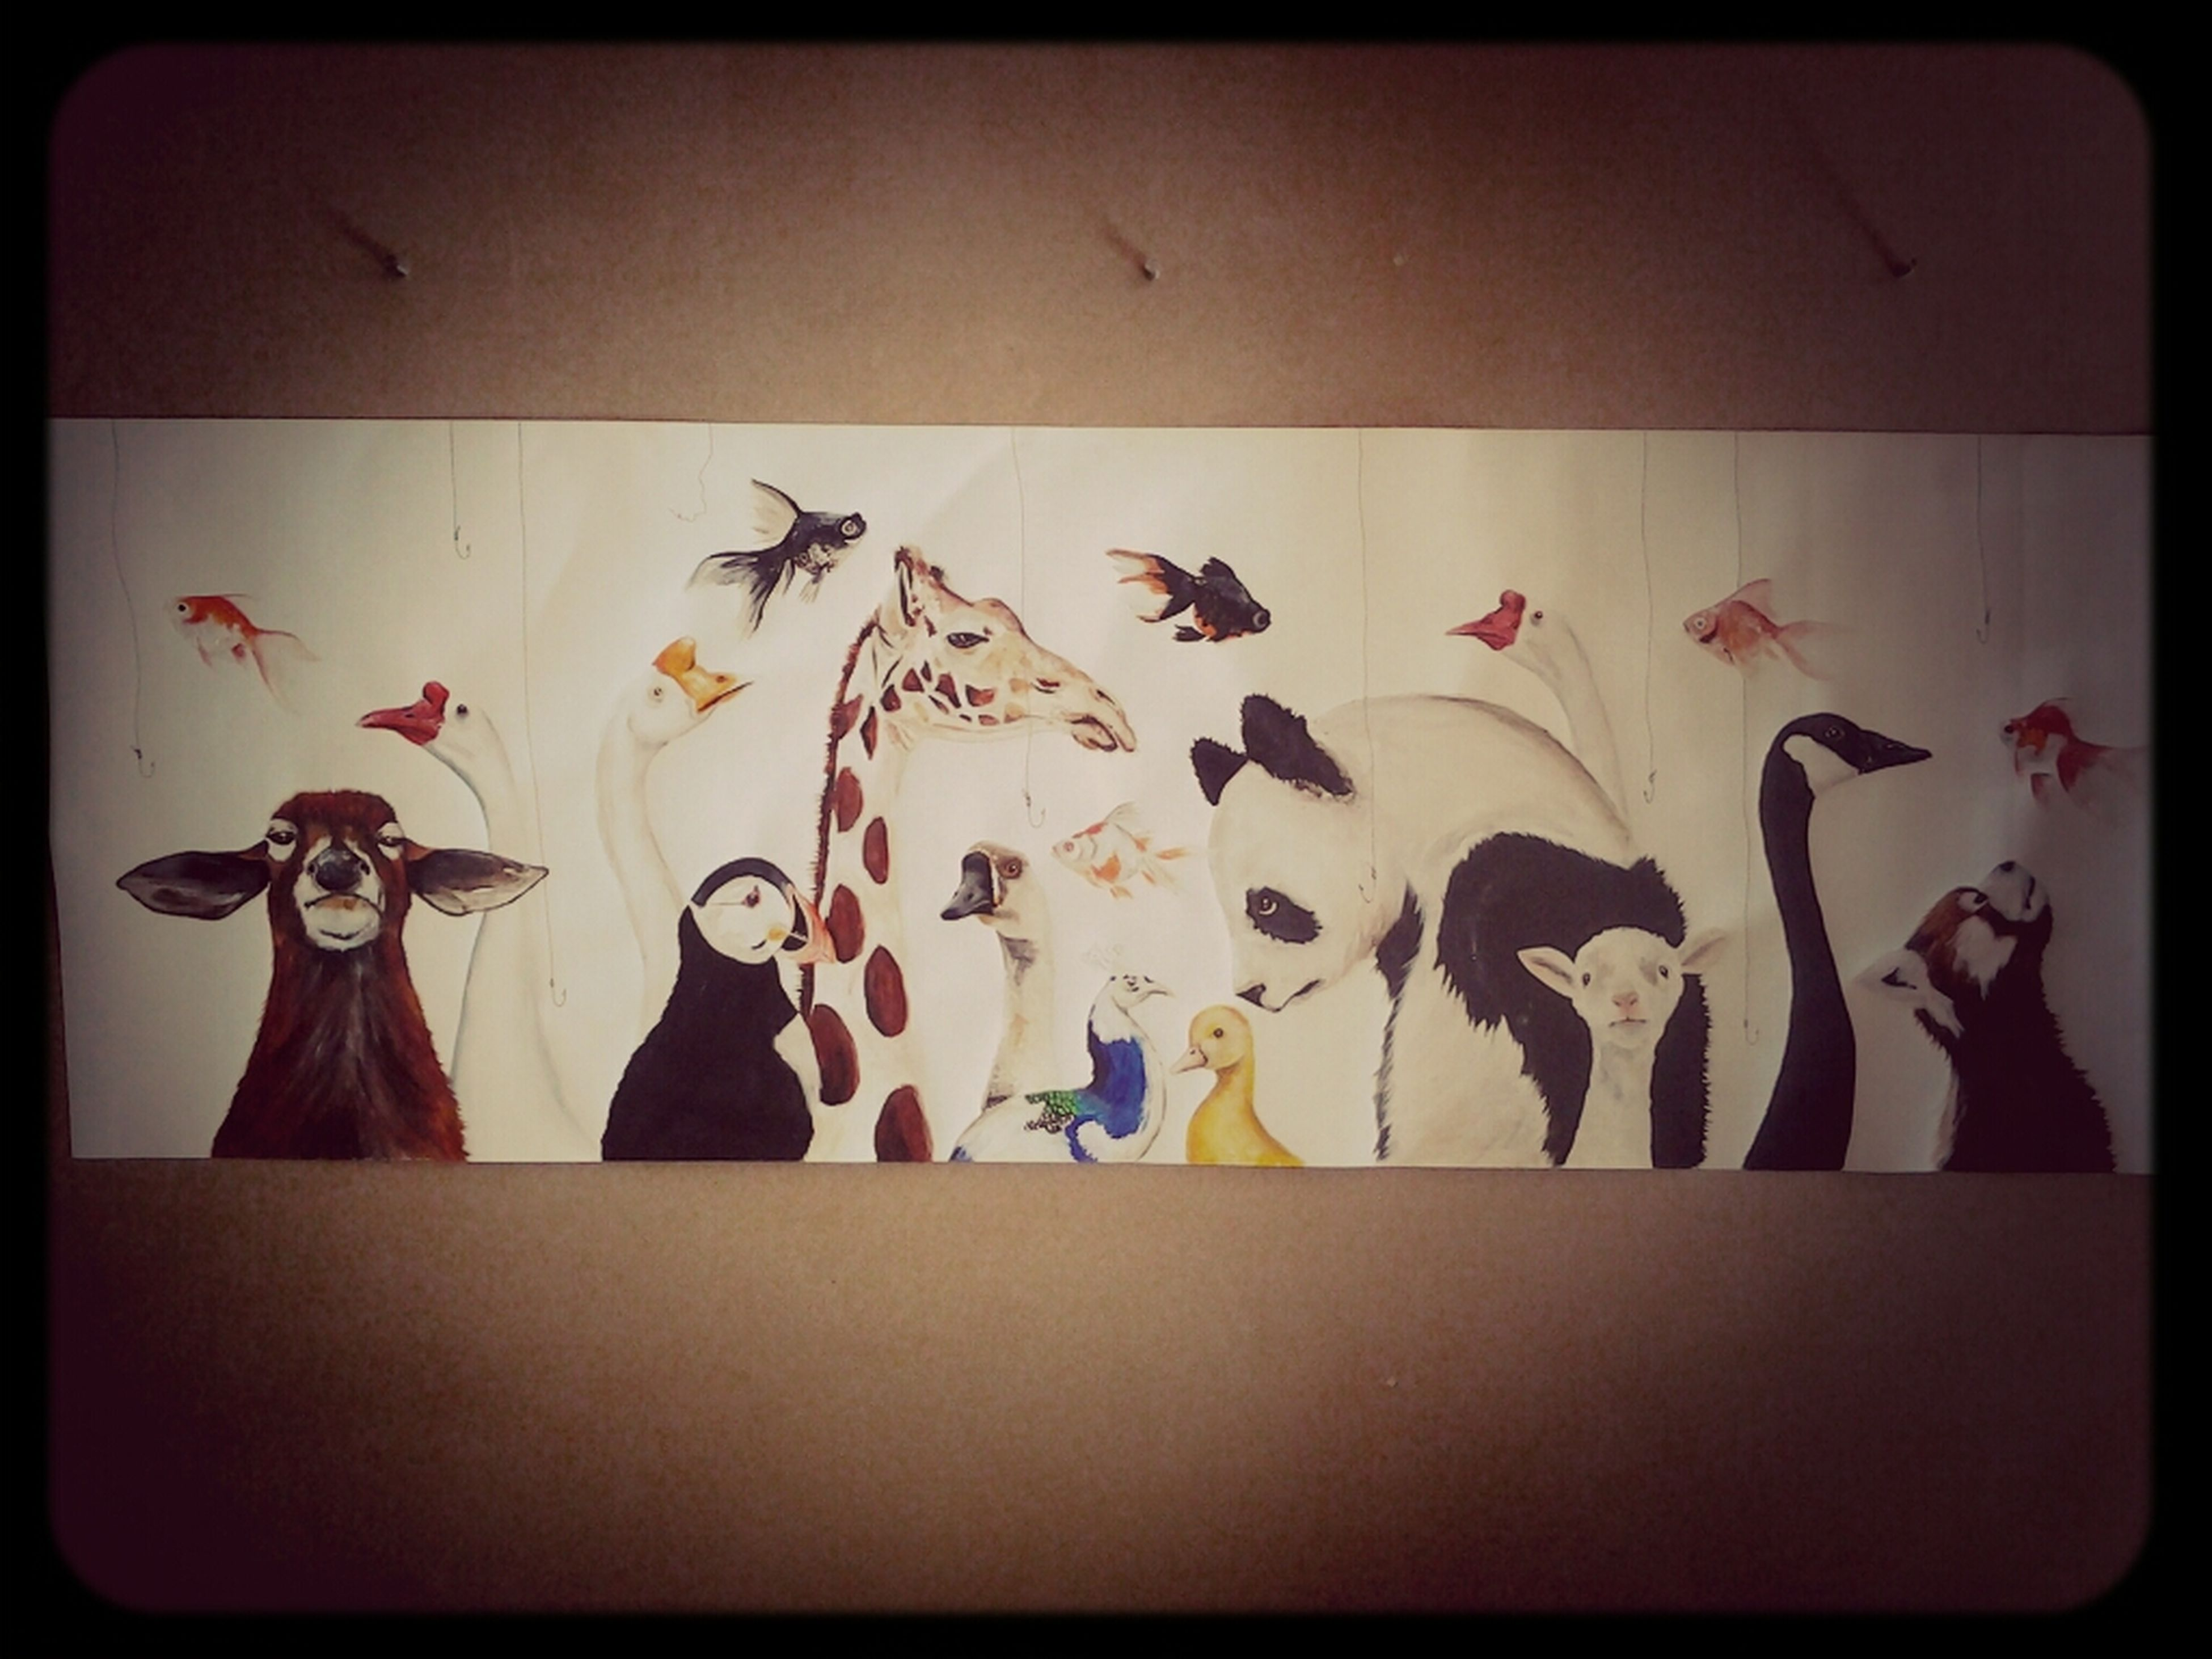 indoors, transfer print, art and craft, creativity, art, animal representation, auto post production filter, human representation, wall - building feature, variation, wall, hanging, decoration, paper, multi colored, no people, still life, close-up